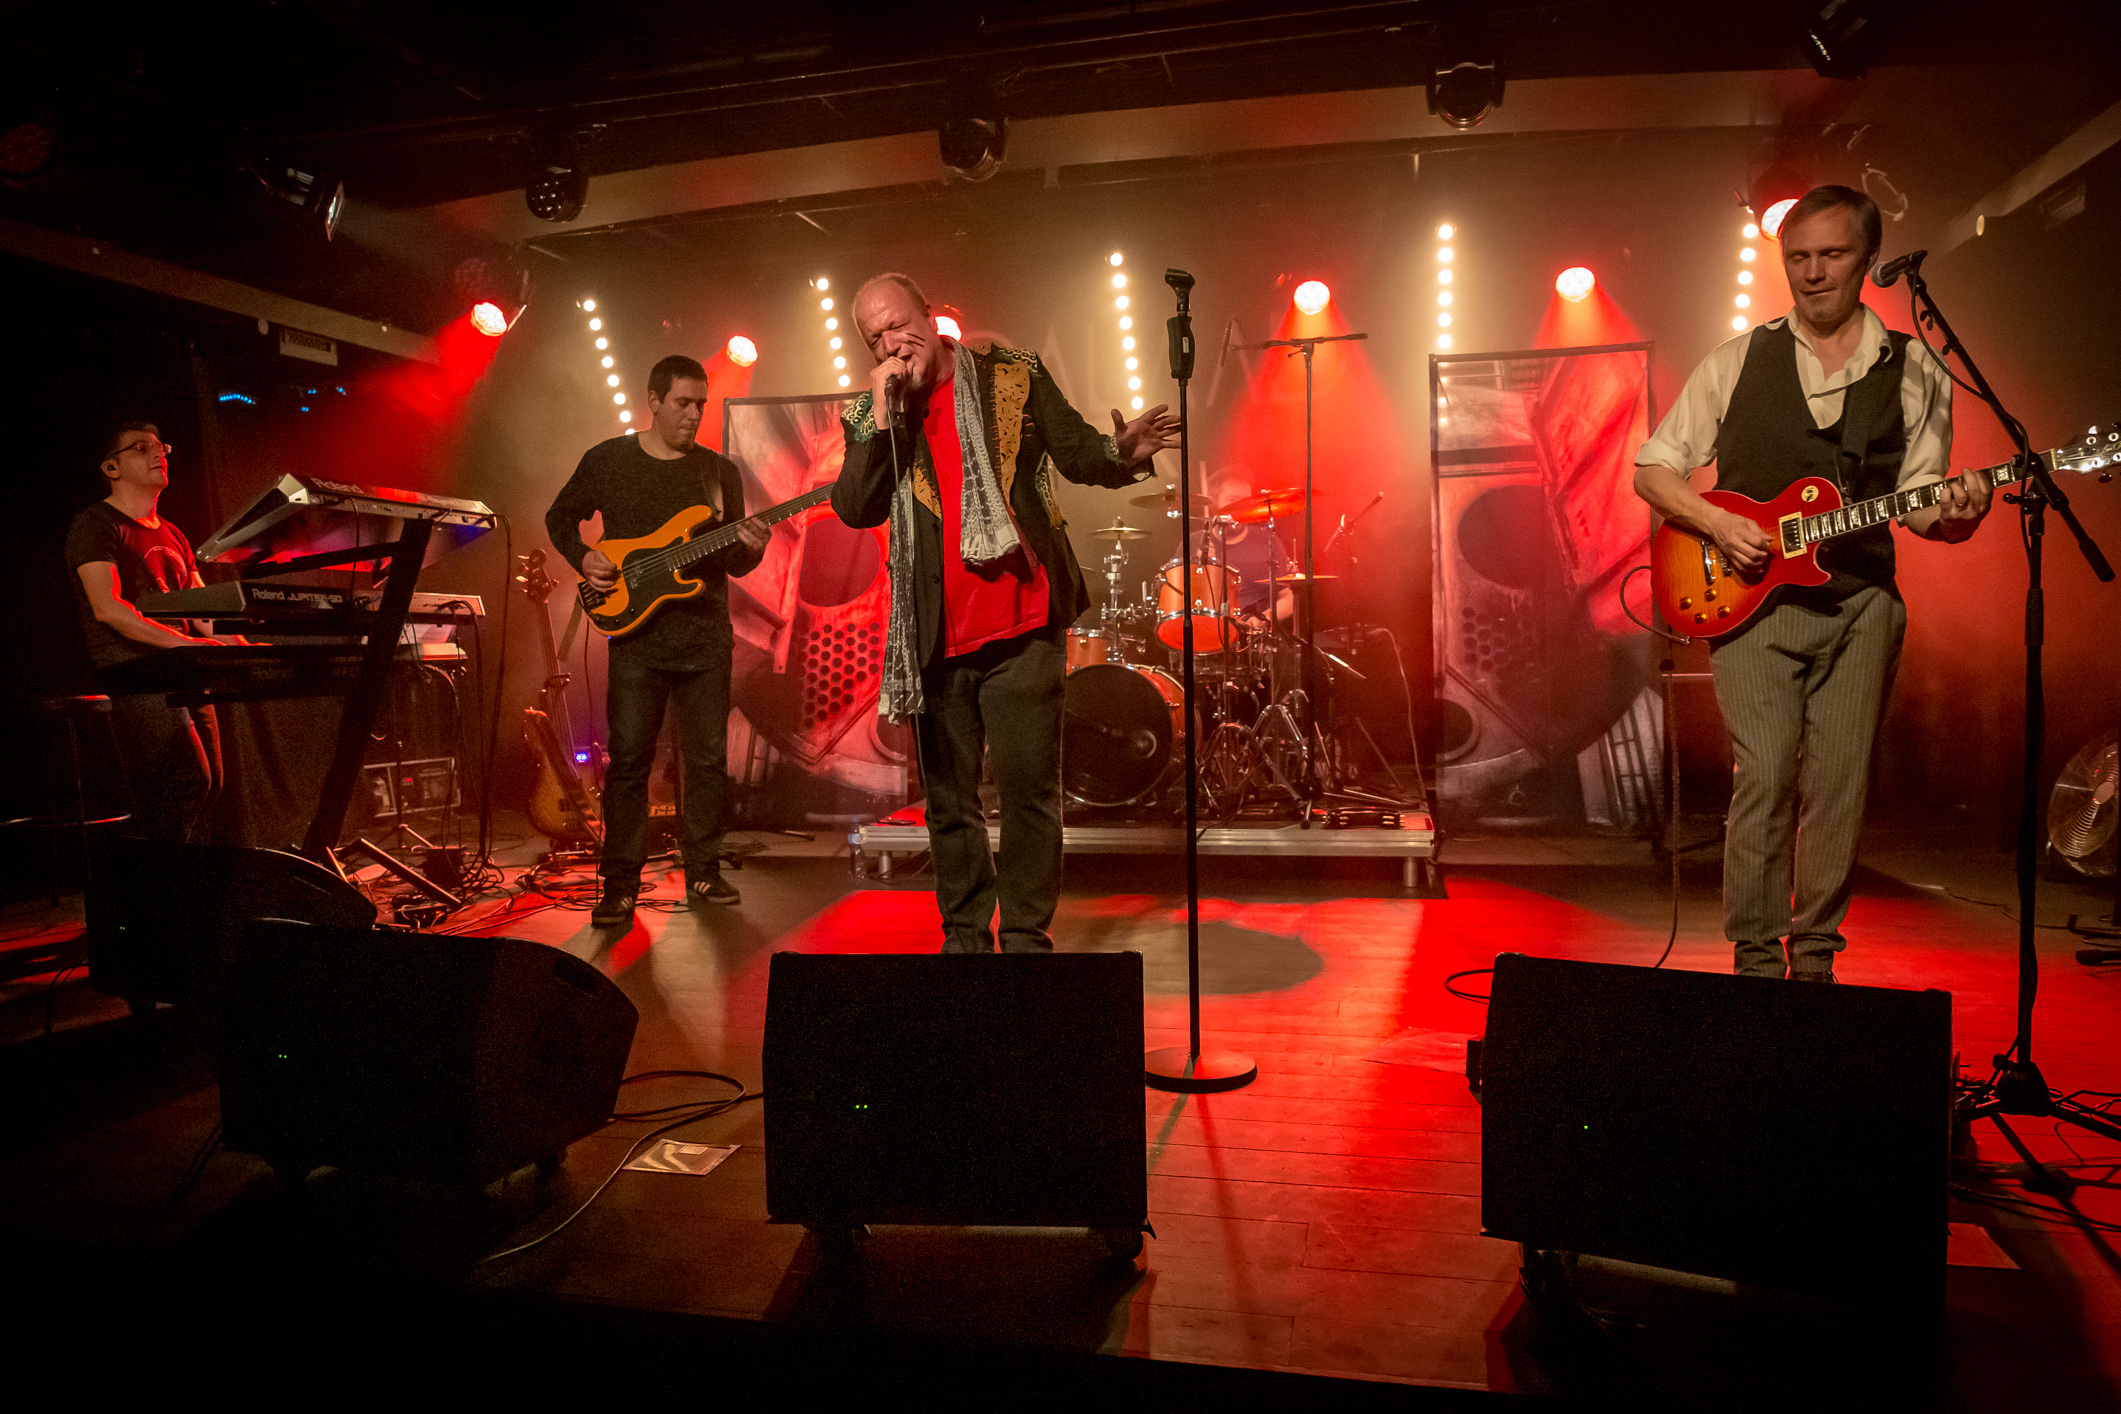 Galaad (rock progressif, Suisse) en concert à l'Azimut d'Estavayer-le-Lac (Suisse), le 18 mai 2019. Photo: Stéphane Gallay, sous licence Creative Commons (CC-BY)